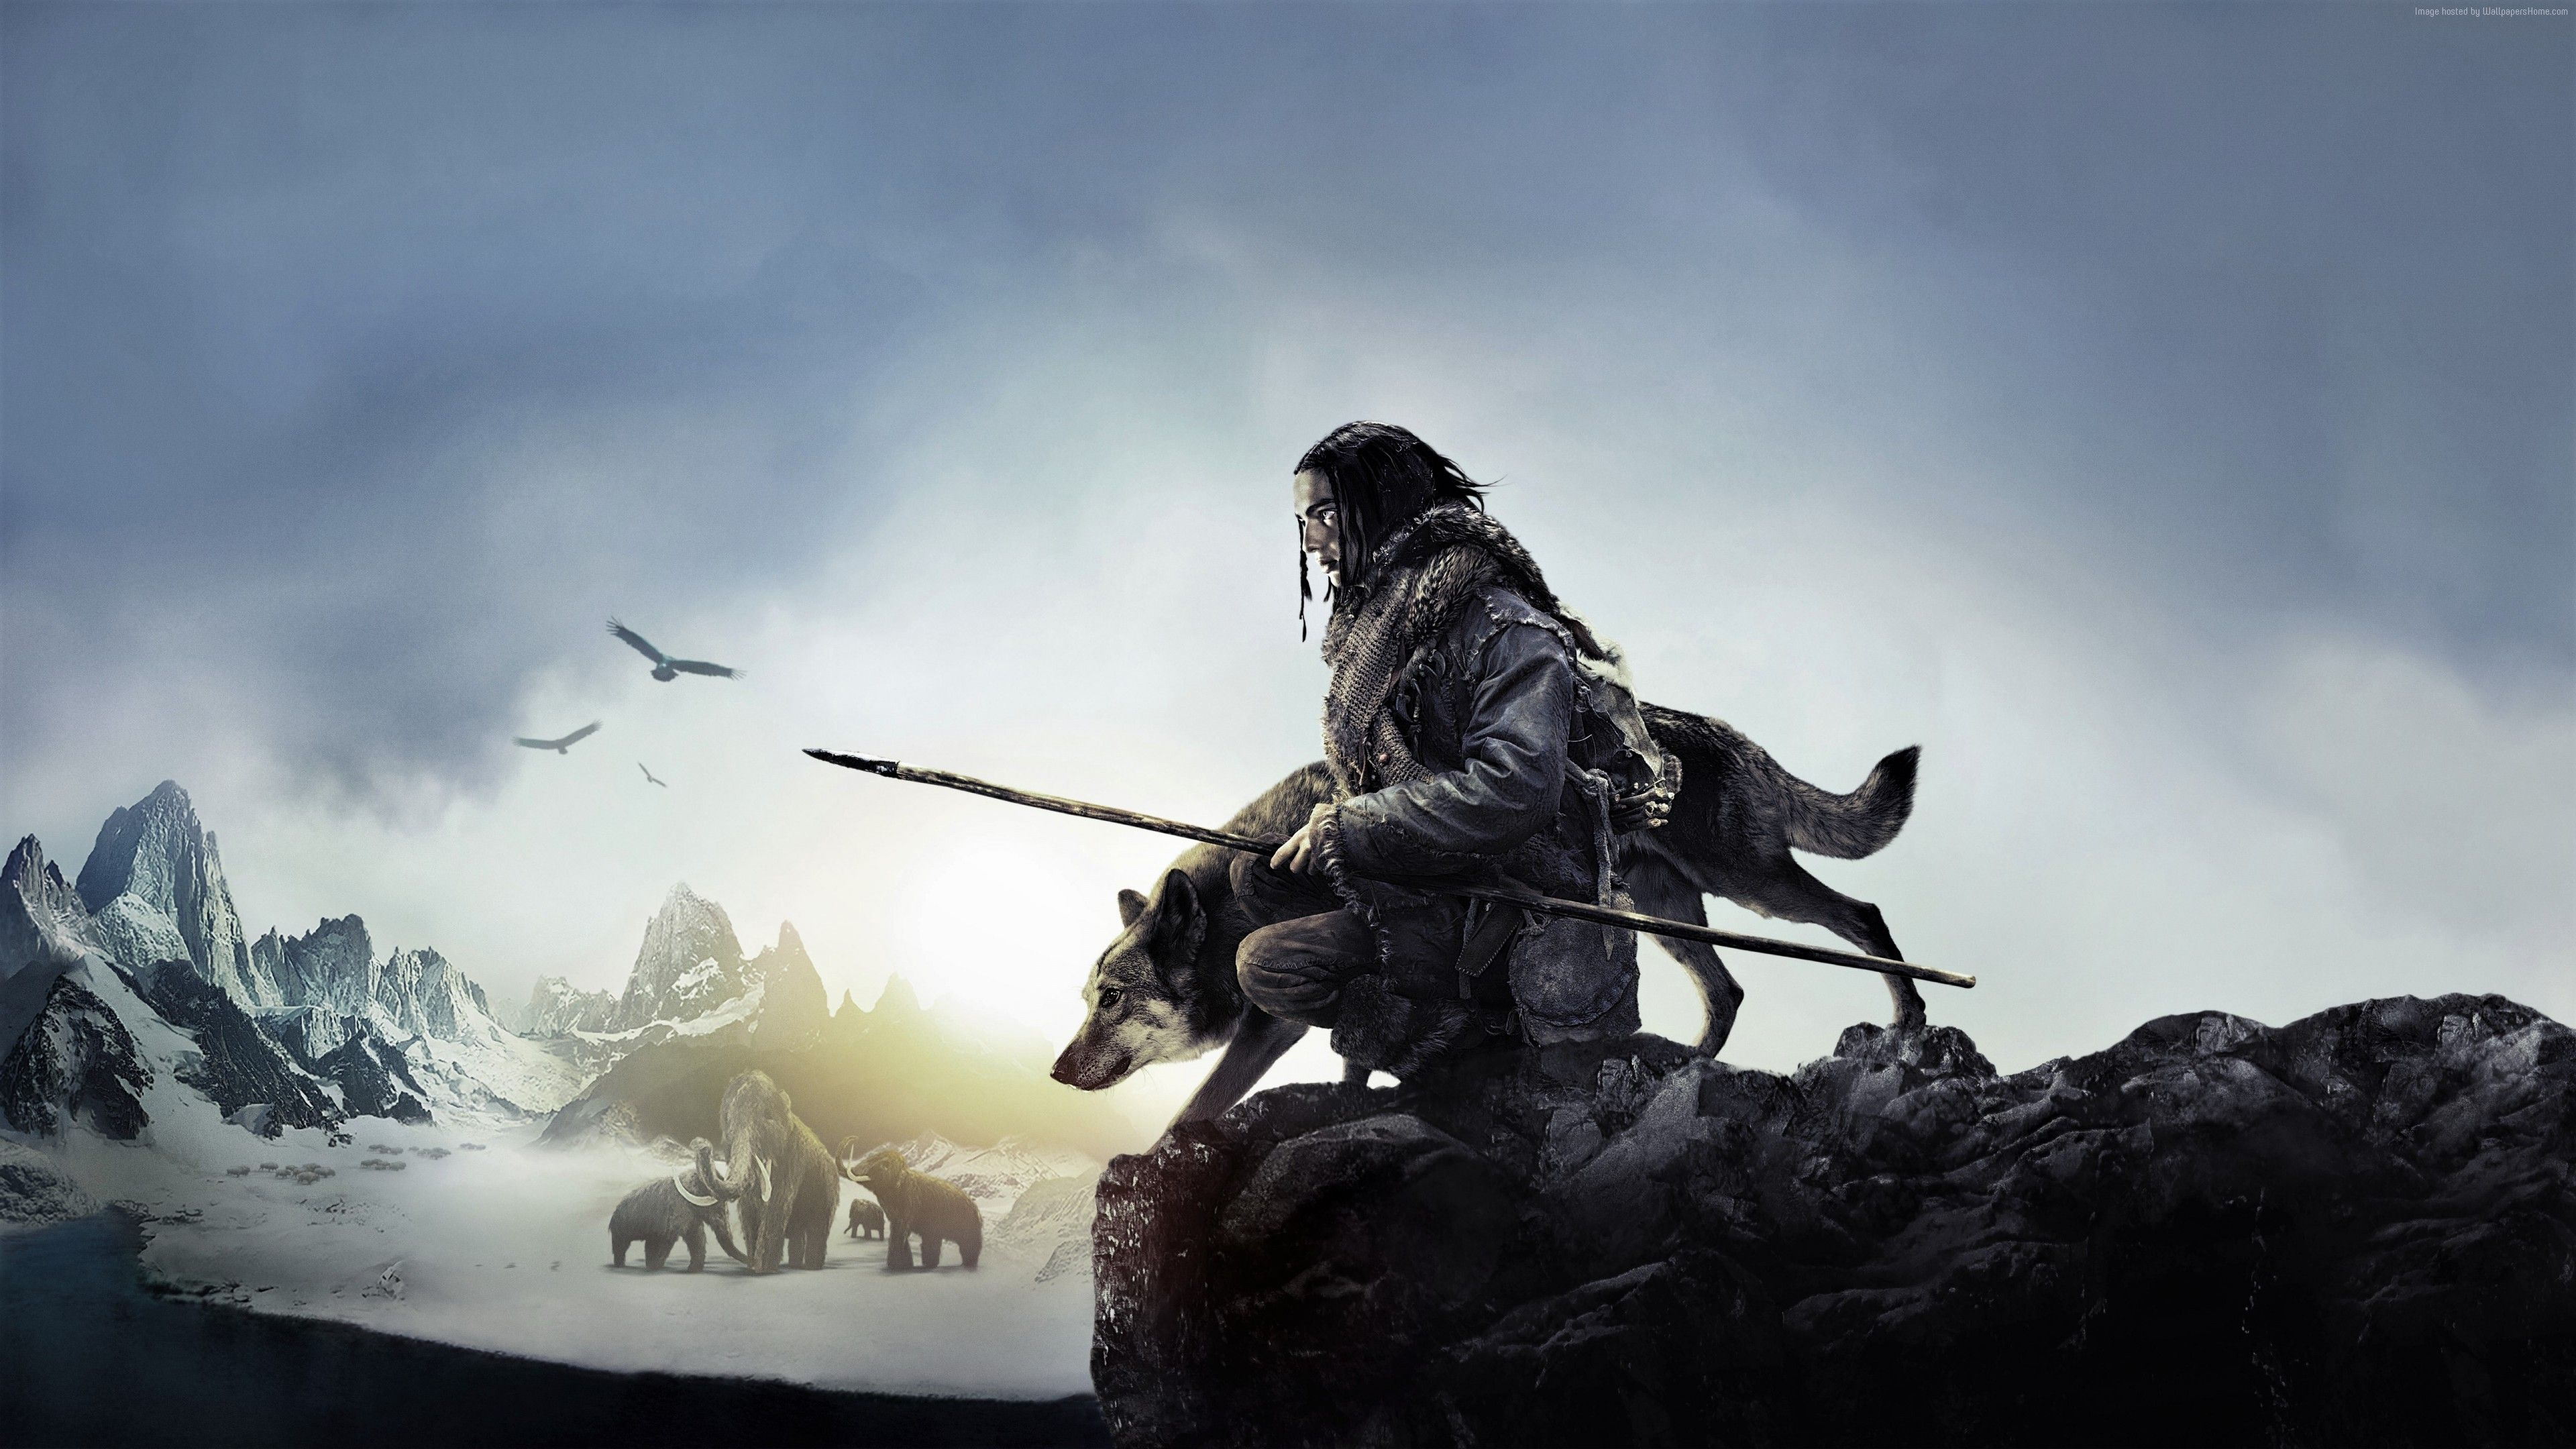 Alpha Movie Wallpapers Top Free Alpha Movie Backgrounds Wallpaperaccess